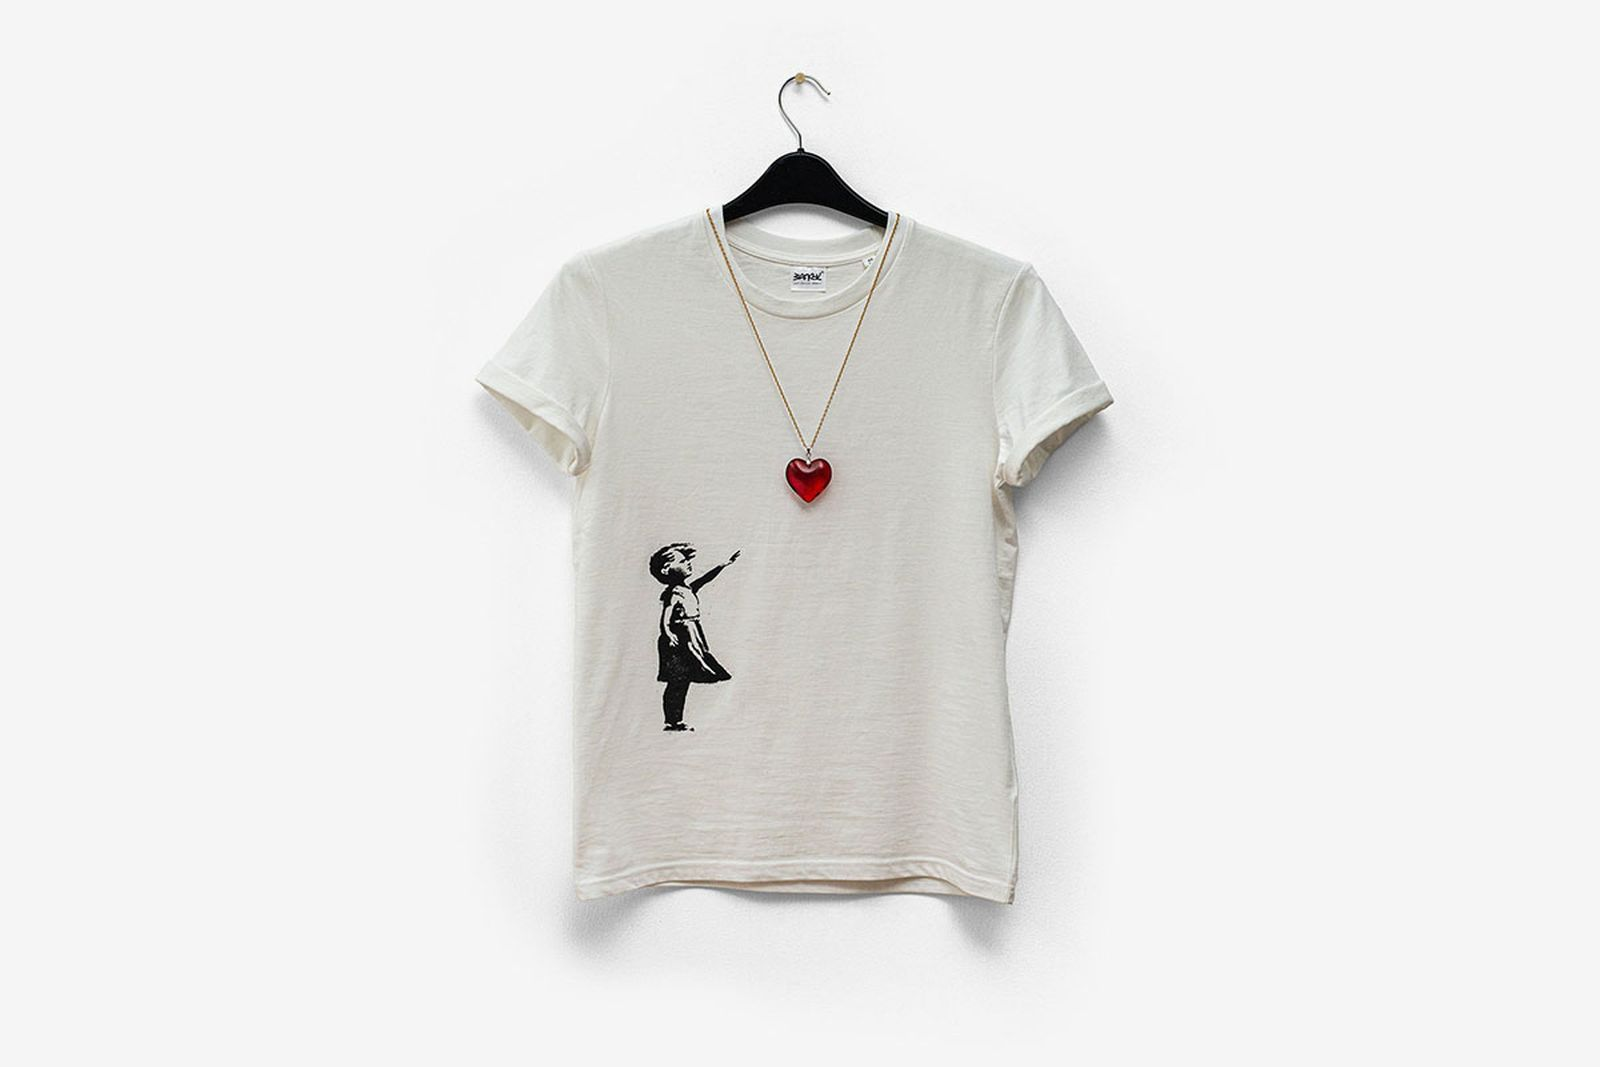 Banksy Gross Domestic Product T-shirt